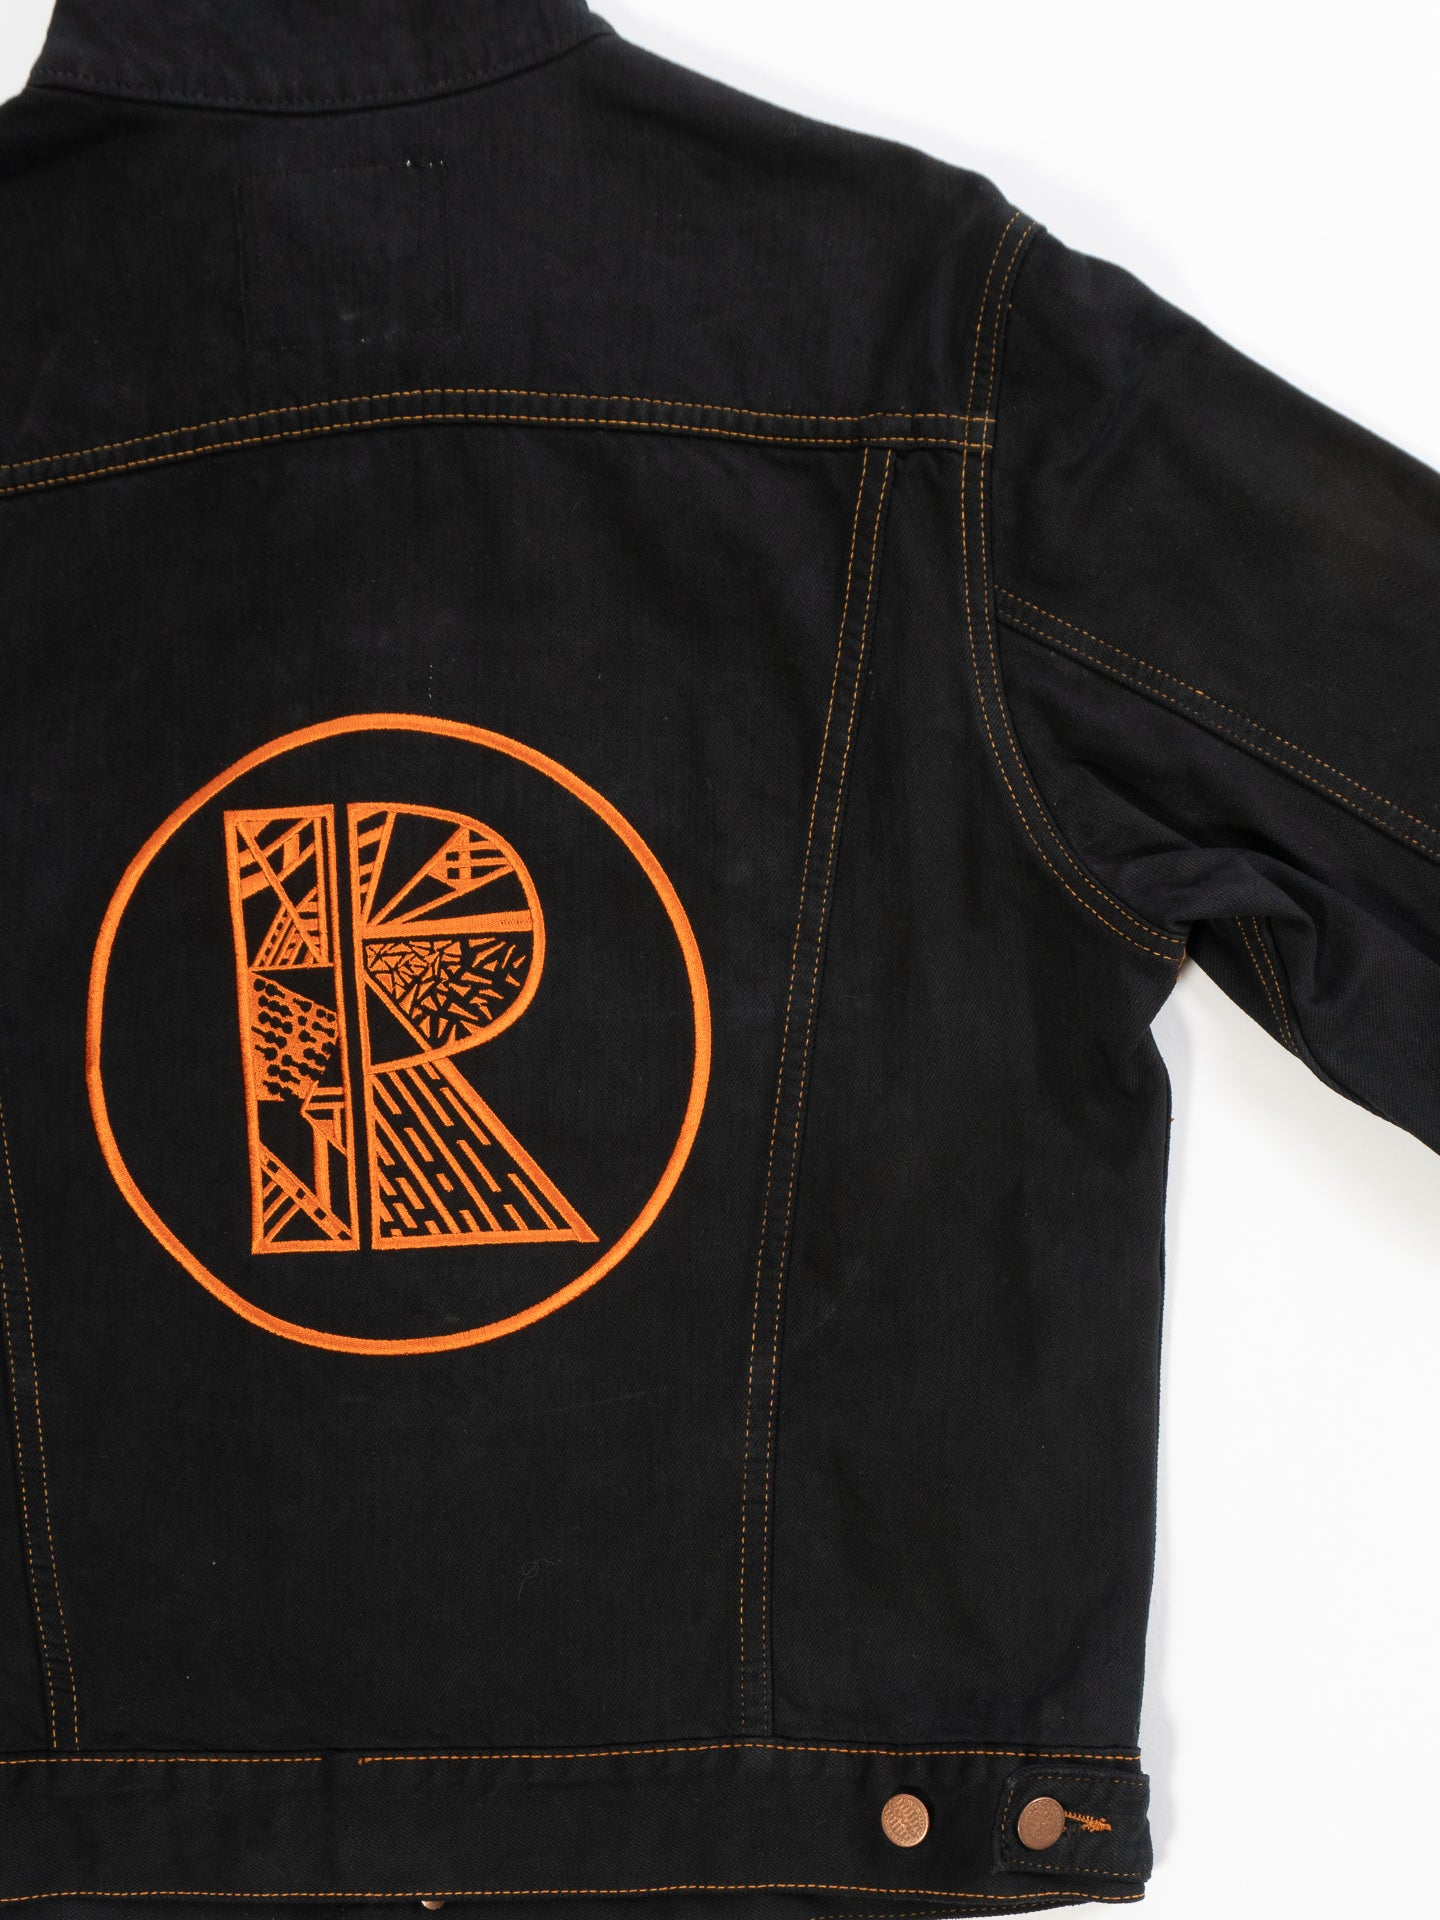 Black Denim Jacket with Orange Rhetorik Logo on Back - Size XXL